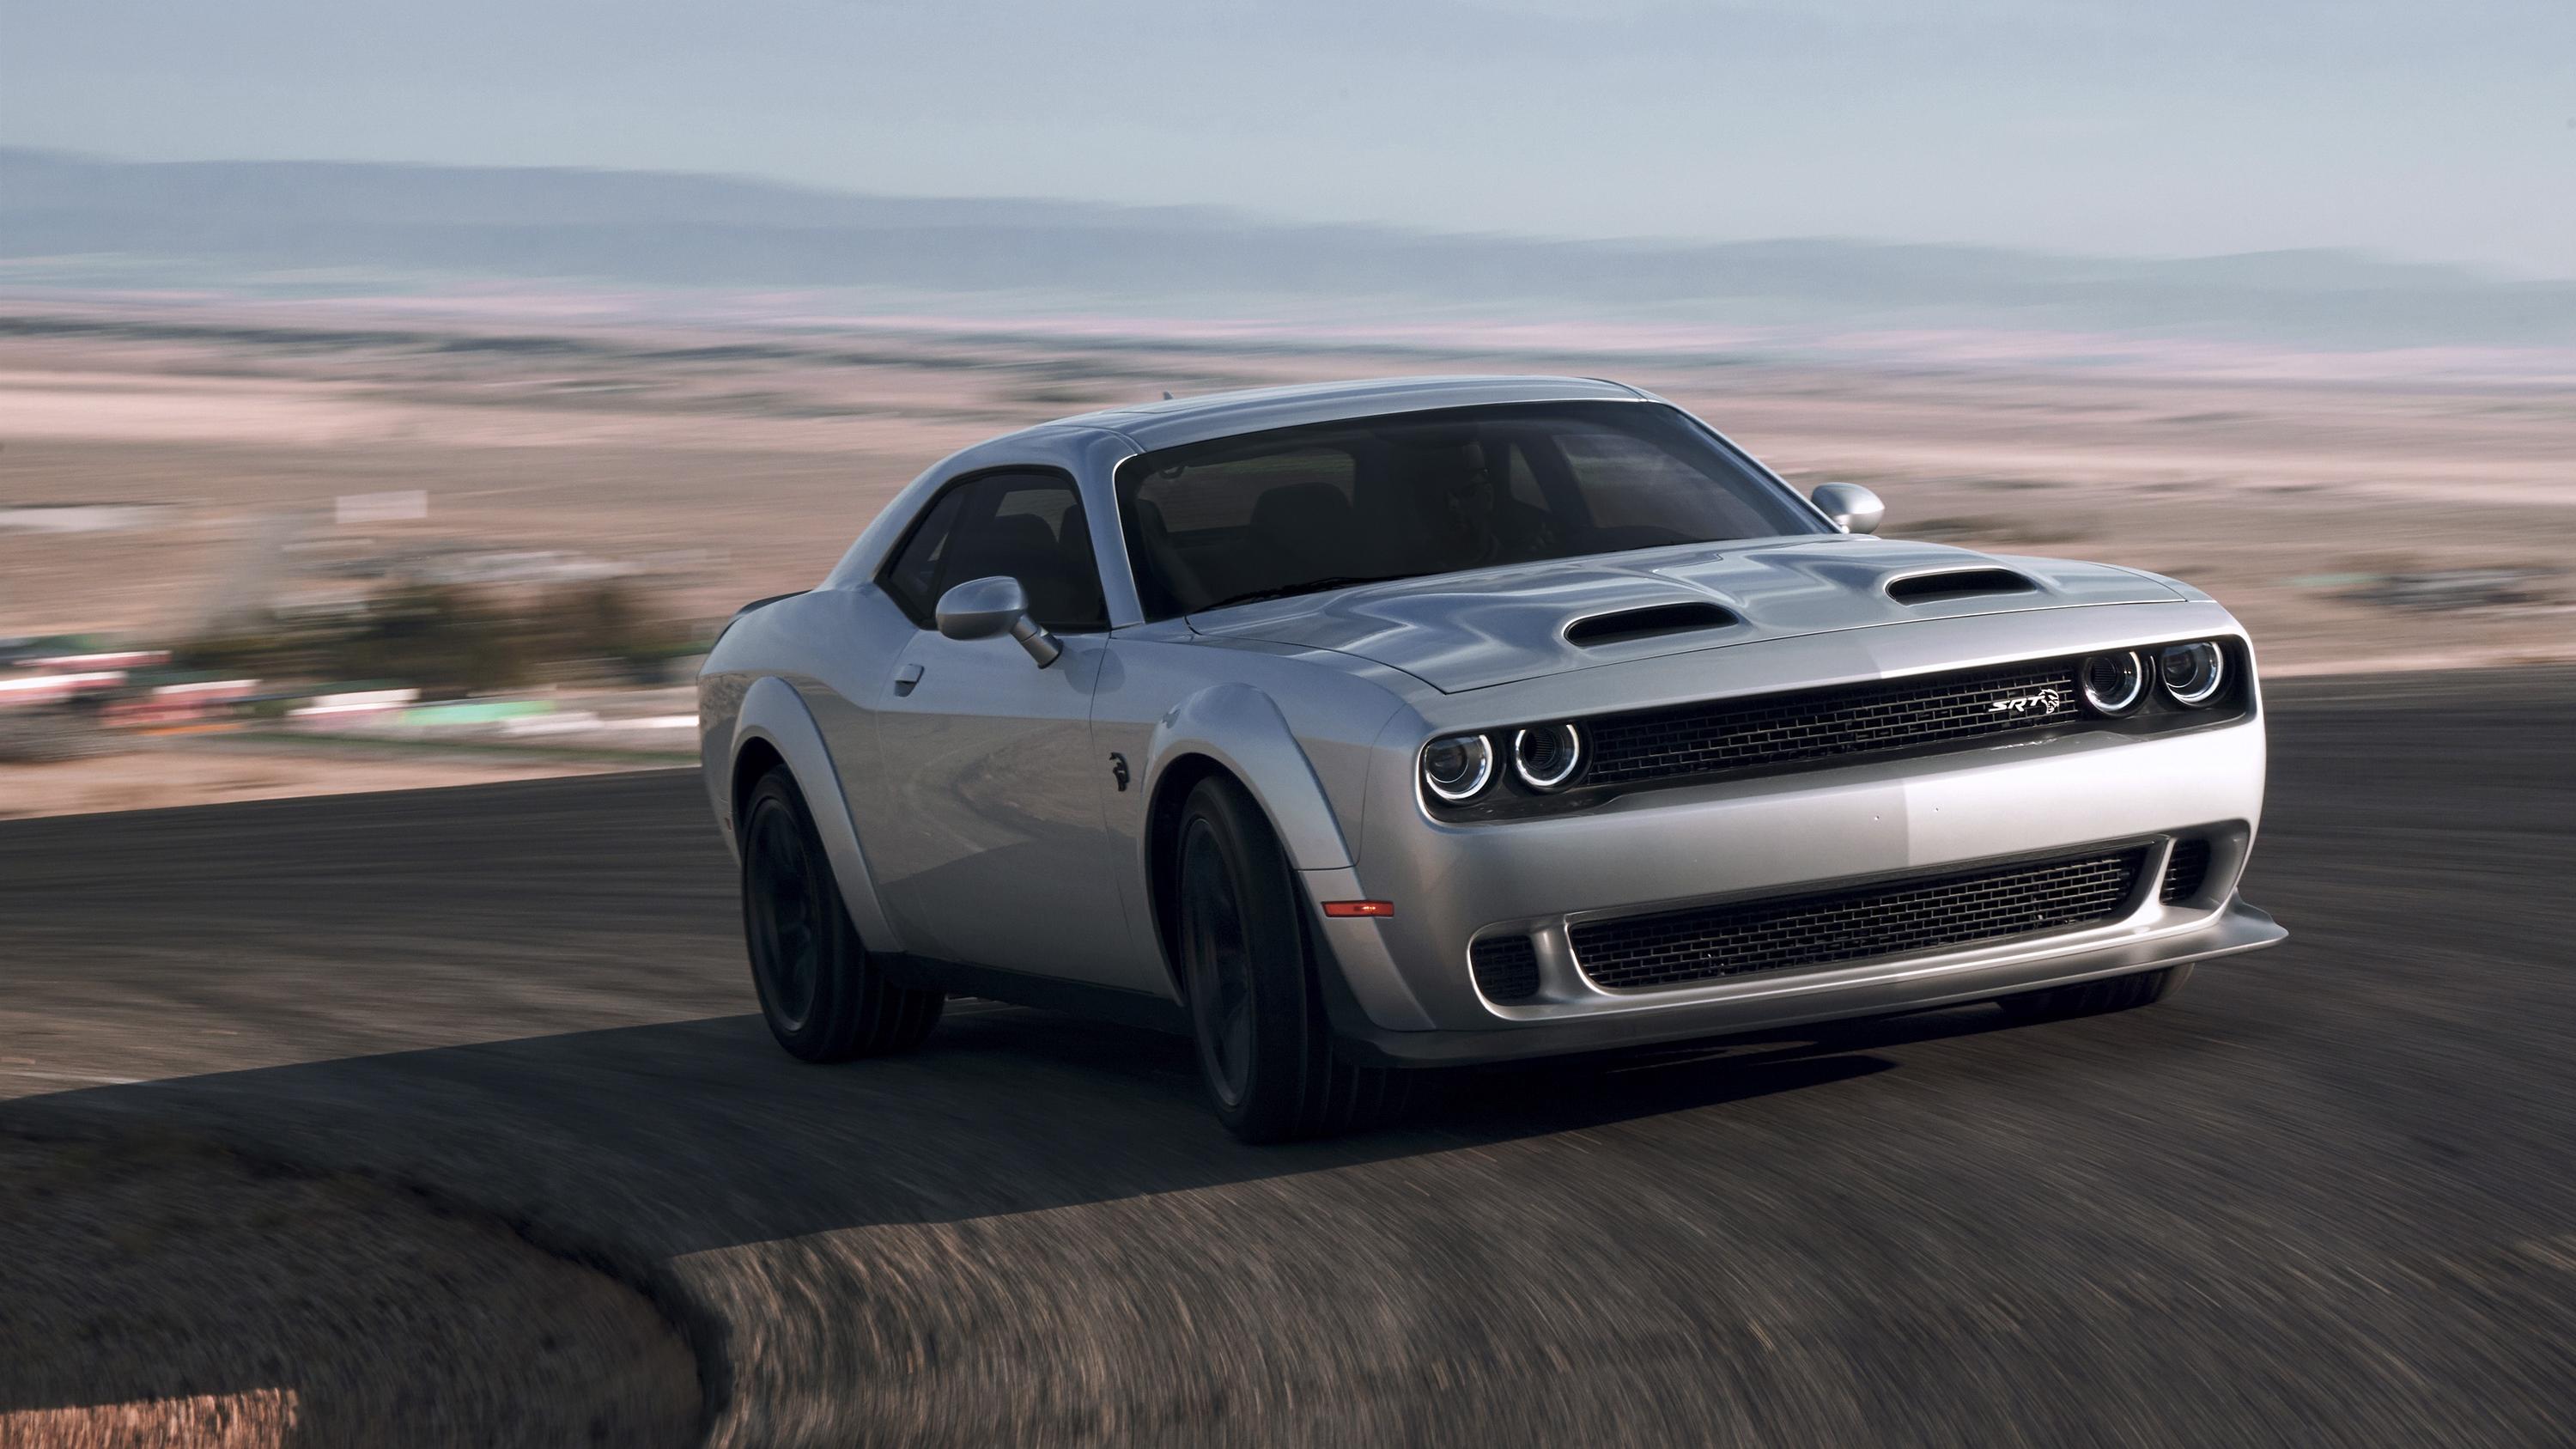 Wallpaper Of The Day Dodge Challenger Srt Hellcat Redeye 343804 Hd Wallpaper Backgrounds Download